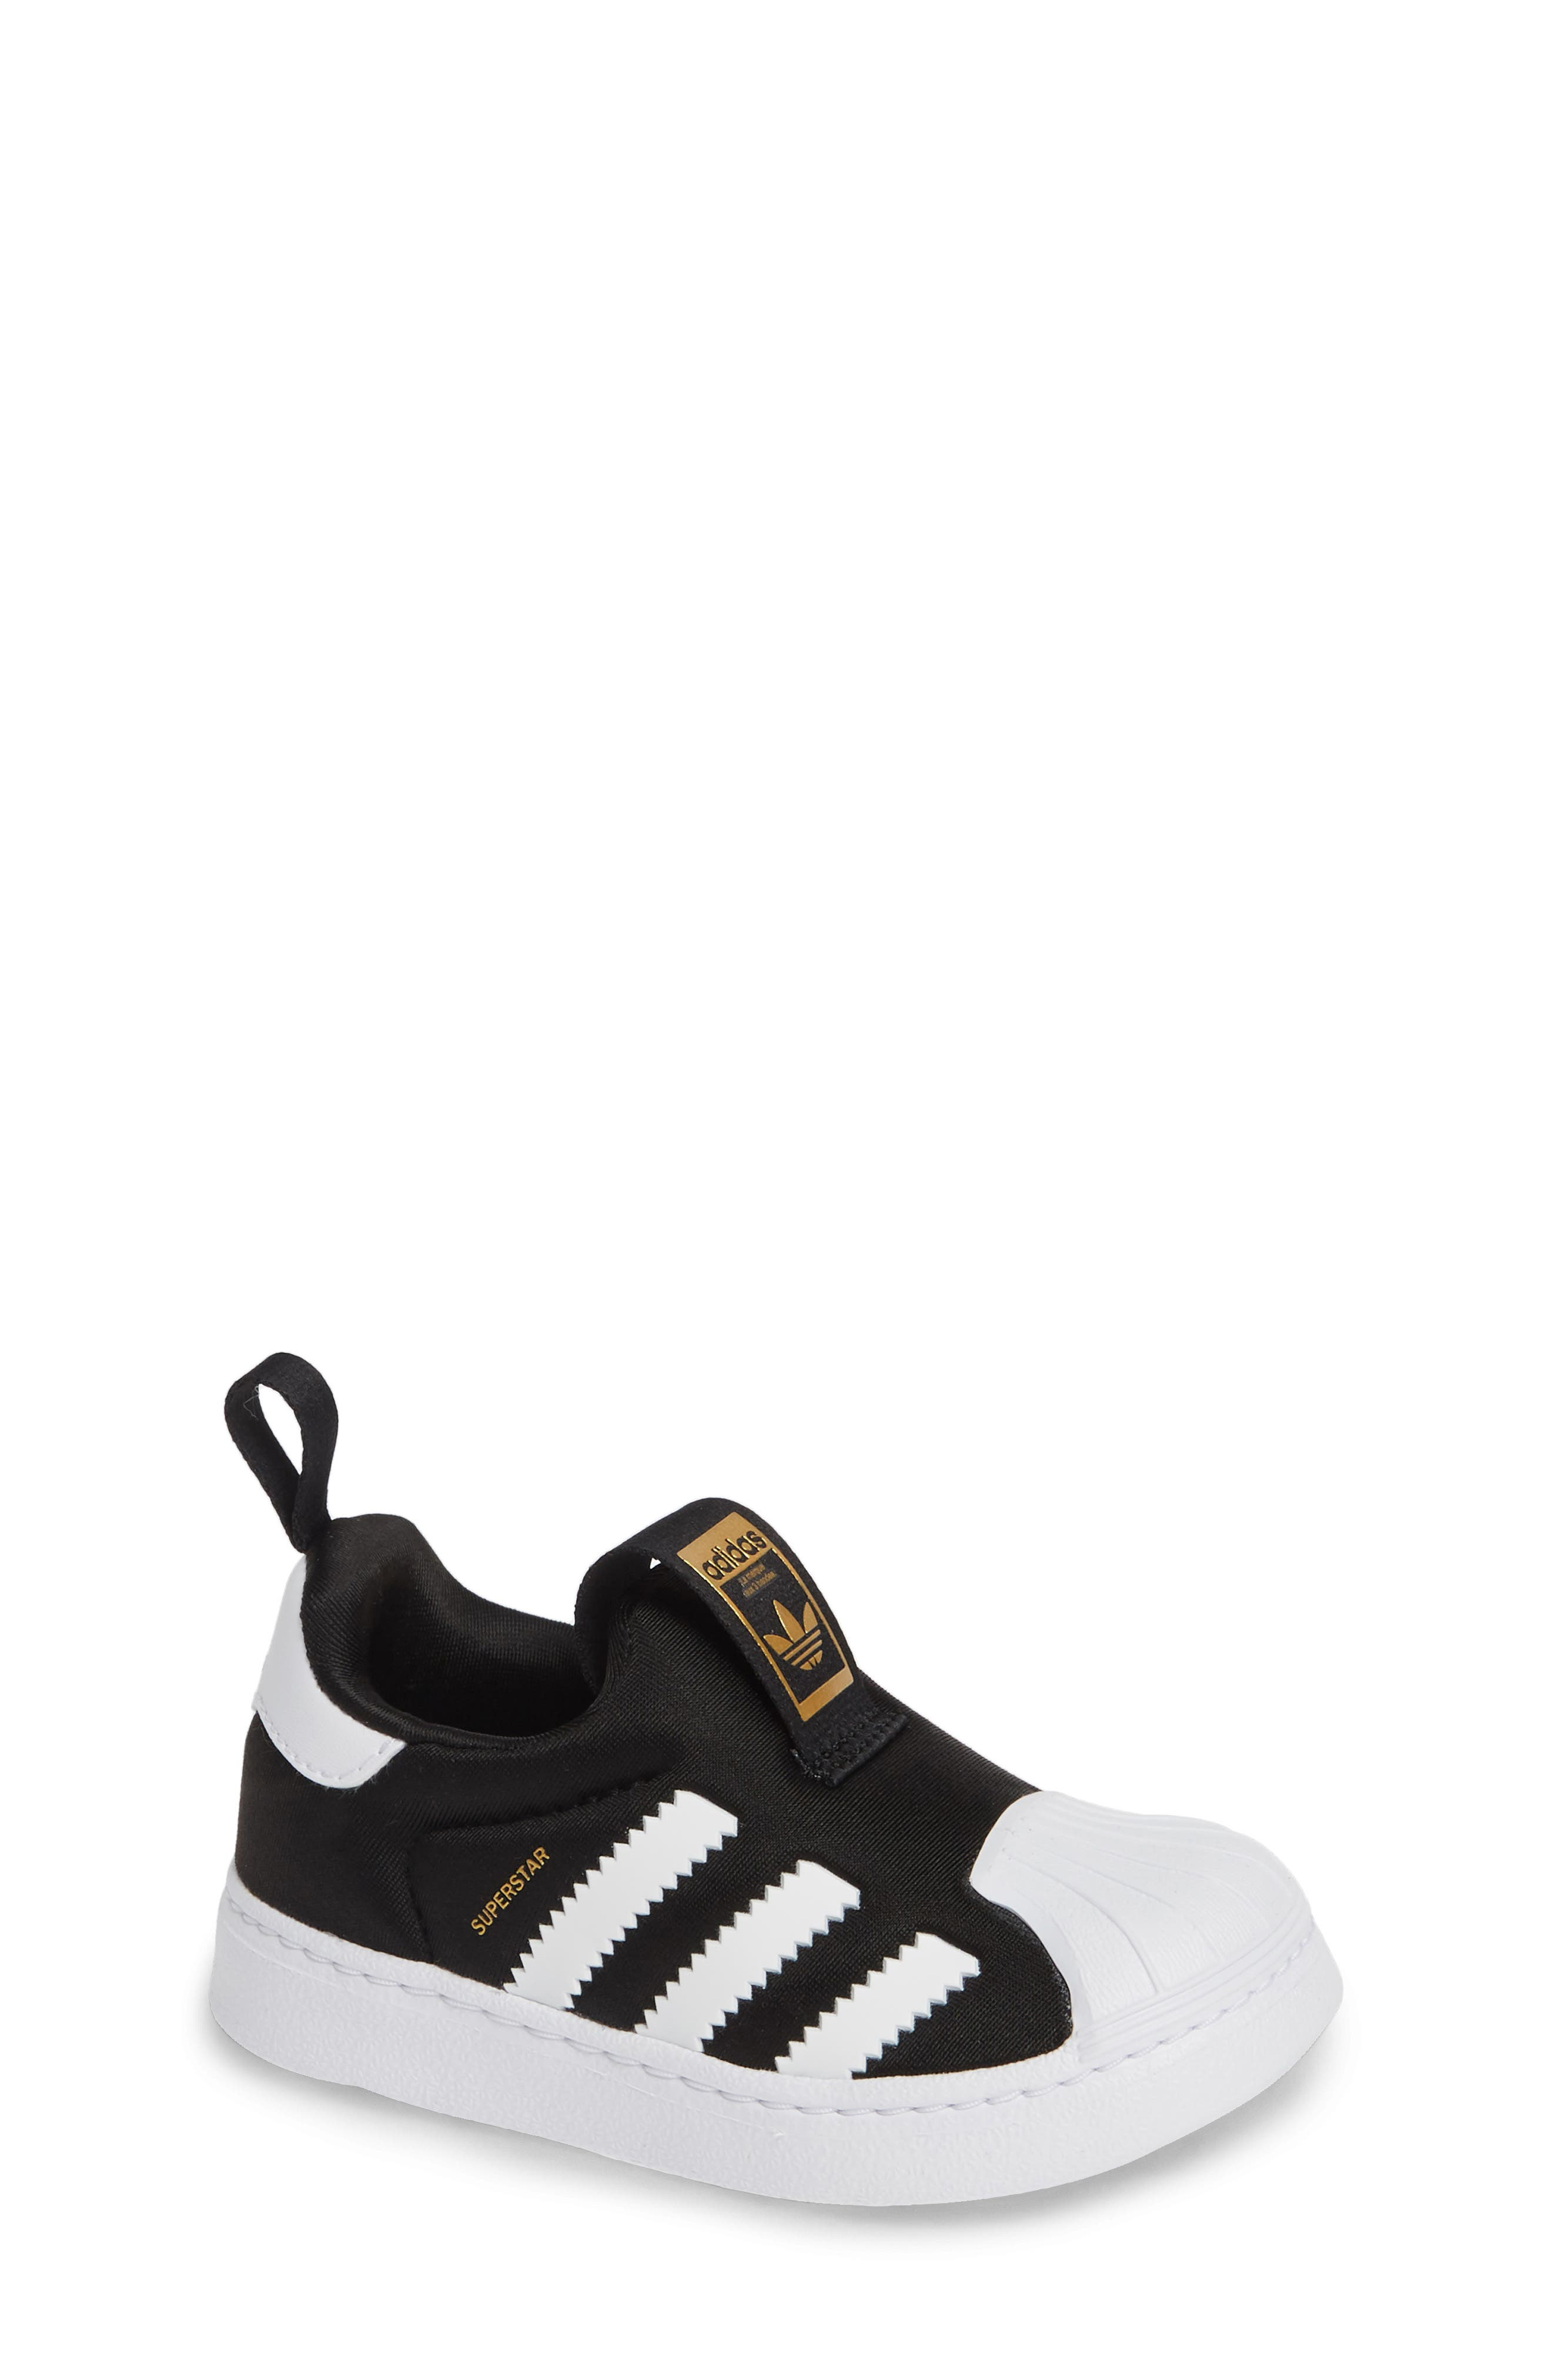 Baby Toddler Walker Nordstrom Shoes amp  Adidas 11UFqrw 38f96e791